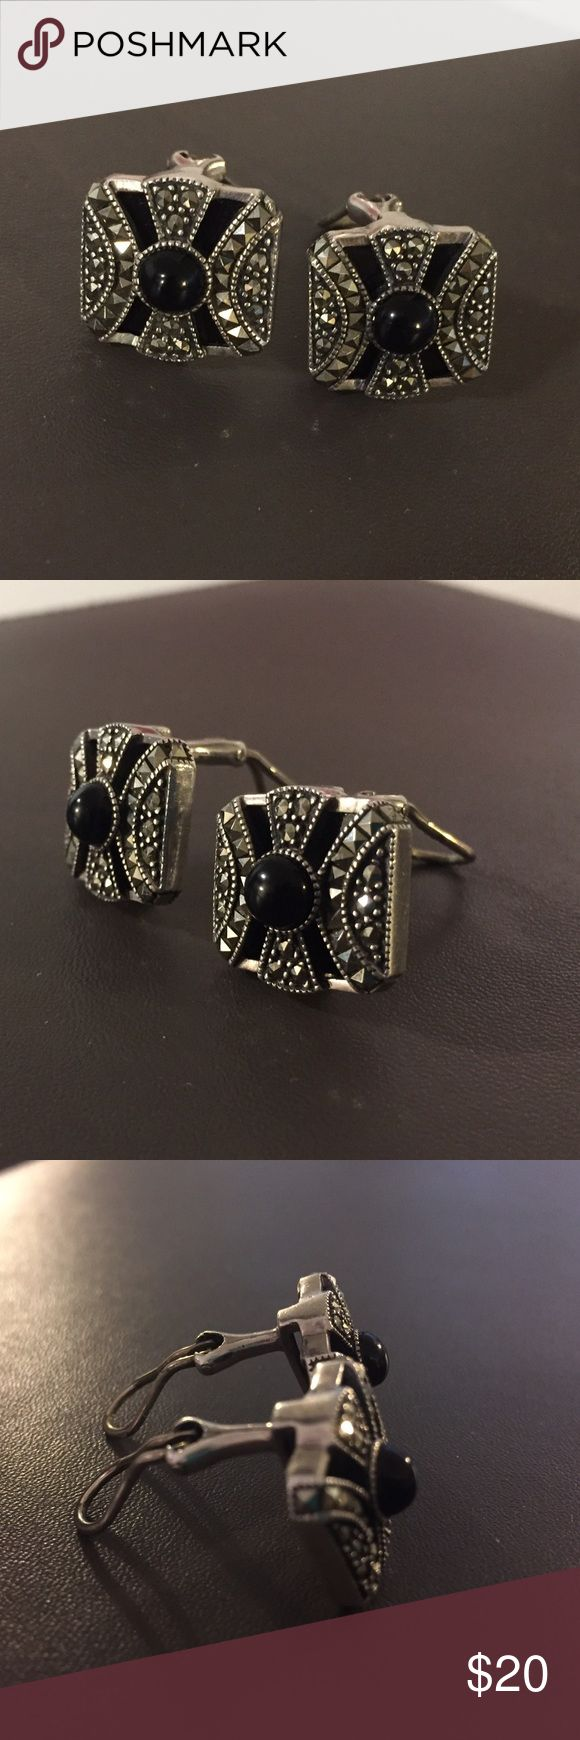 Judith Jack Clip On Earrings Judith Jack Clip On Earrings, sterling silver, in perfect condition, with genuine marcasite and onyx stones. Judith Jack Jewelry Earrings